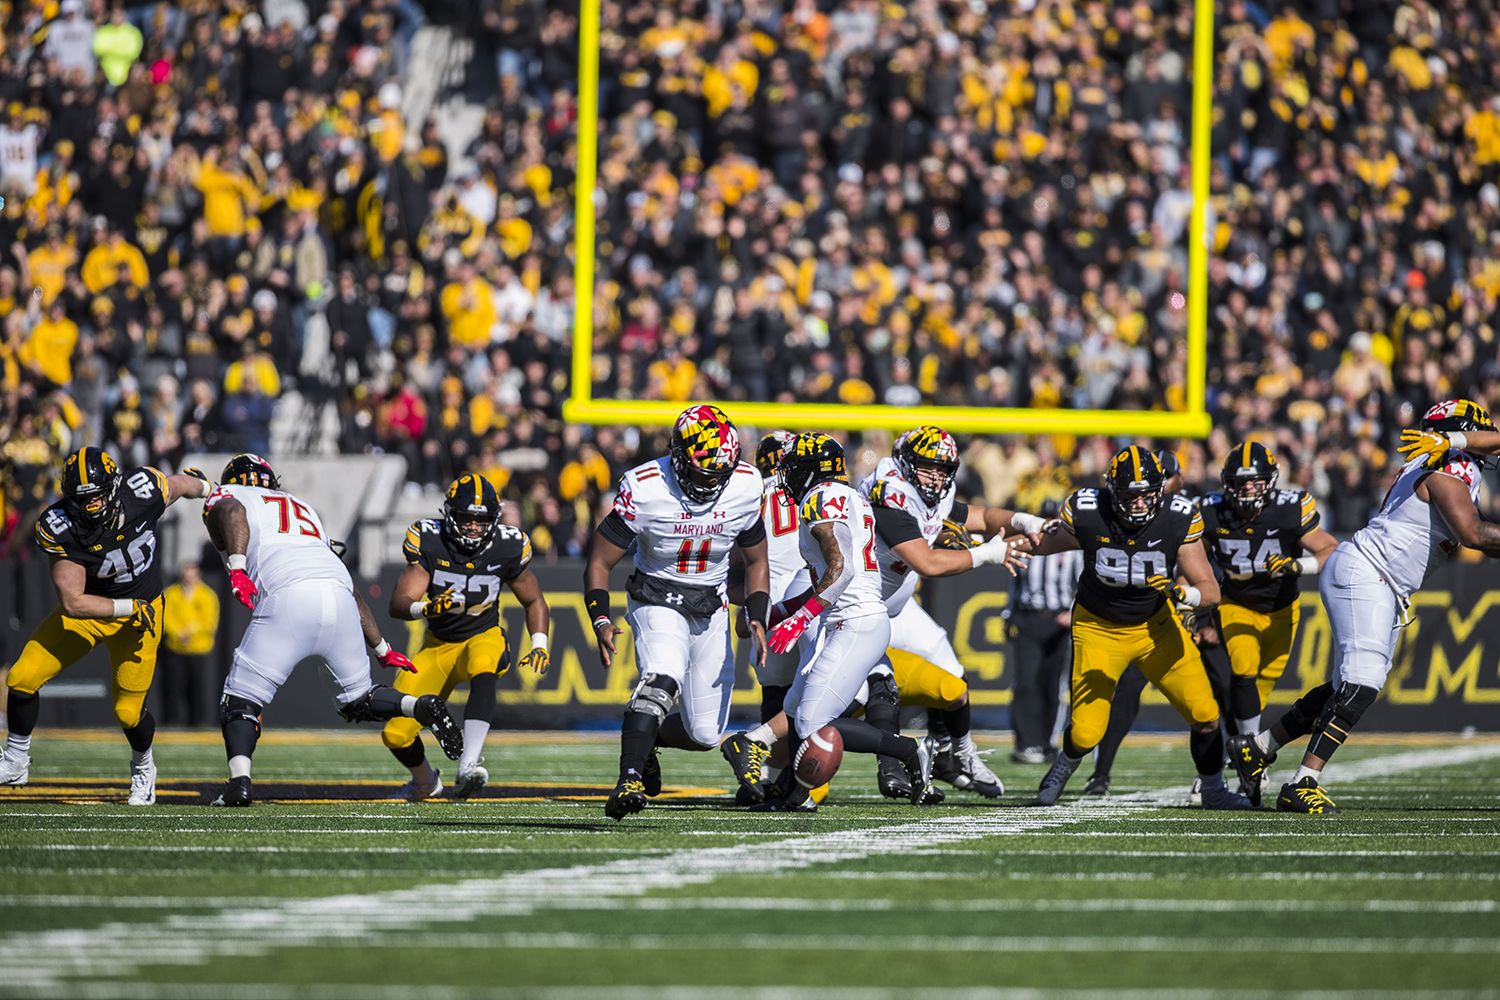 Maryland+Kasim+Hill+%2811%29+loses+control+of+the+ball+during+the+Iowa%2FMaryland+homecoming+football+game+at+Kinnick+Stadium+on+Saturday%2C+October+20%2C+2018.+The+Hawkeyes+defeated+the+Terrapins%2C+23-0.+